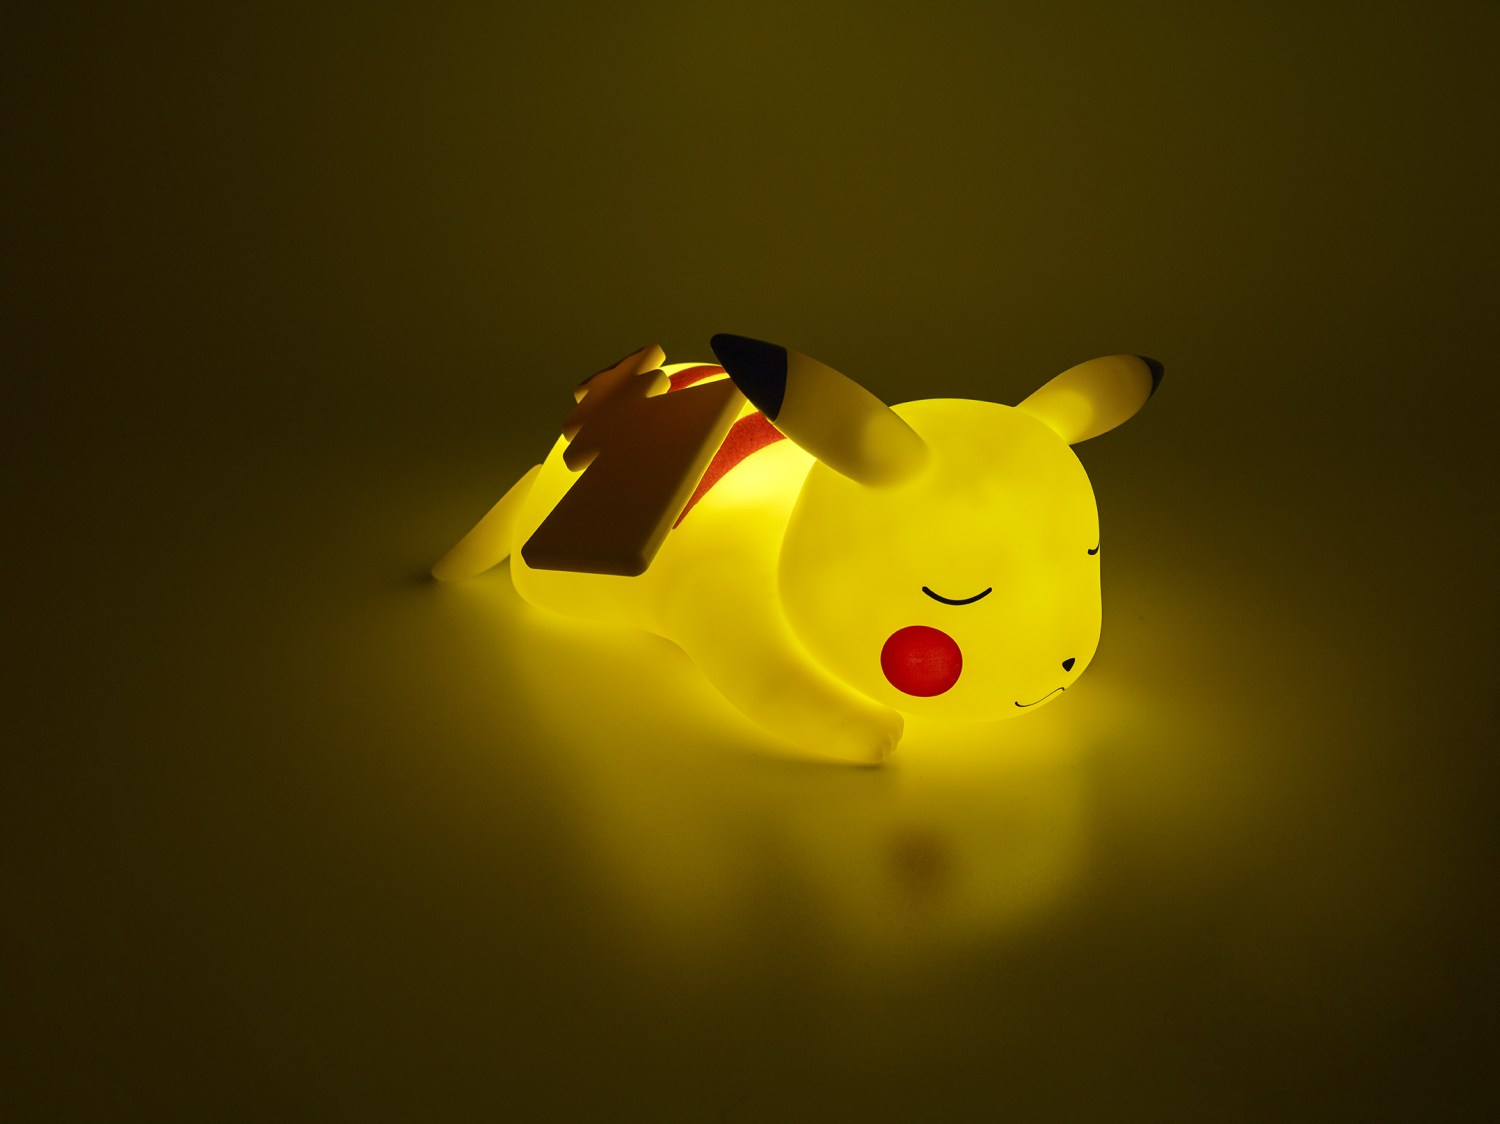 Pokémon pikachu LED Lamp 10in night view